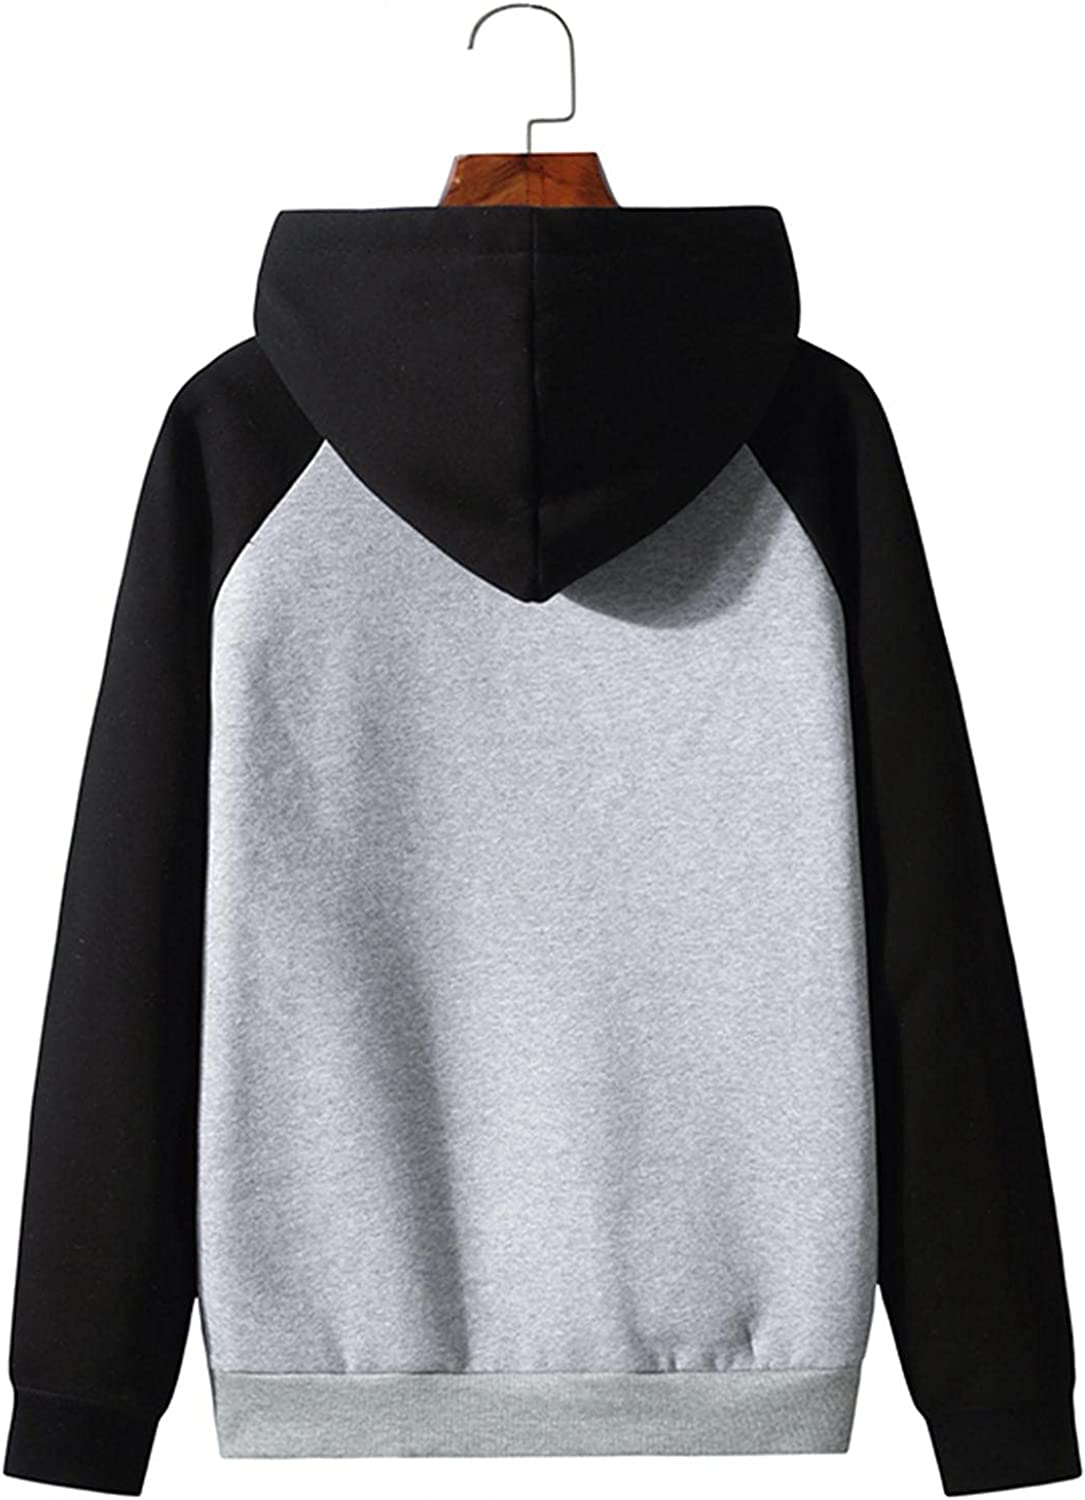 Men's Hoodie Stitching Color Athletic Sweatshirt Long Sleeve Pockets Drawstring Pullover Tops Hooded Hoodies Fall Coats